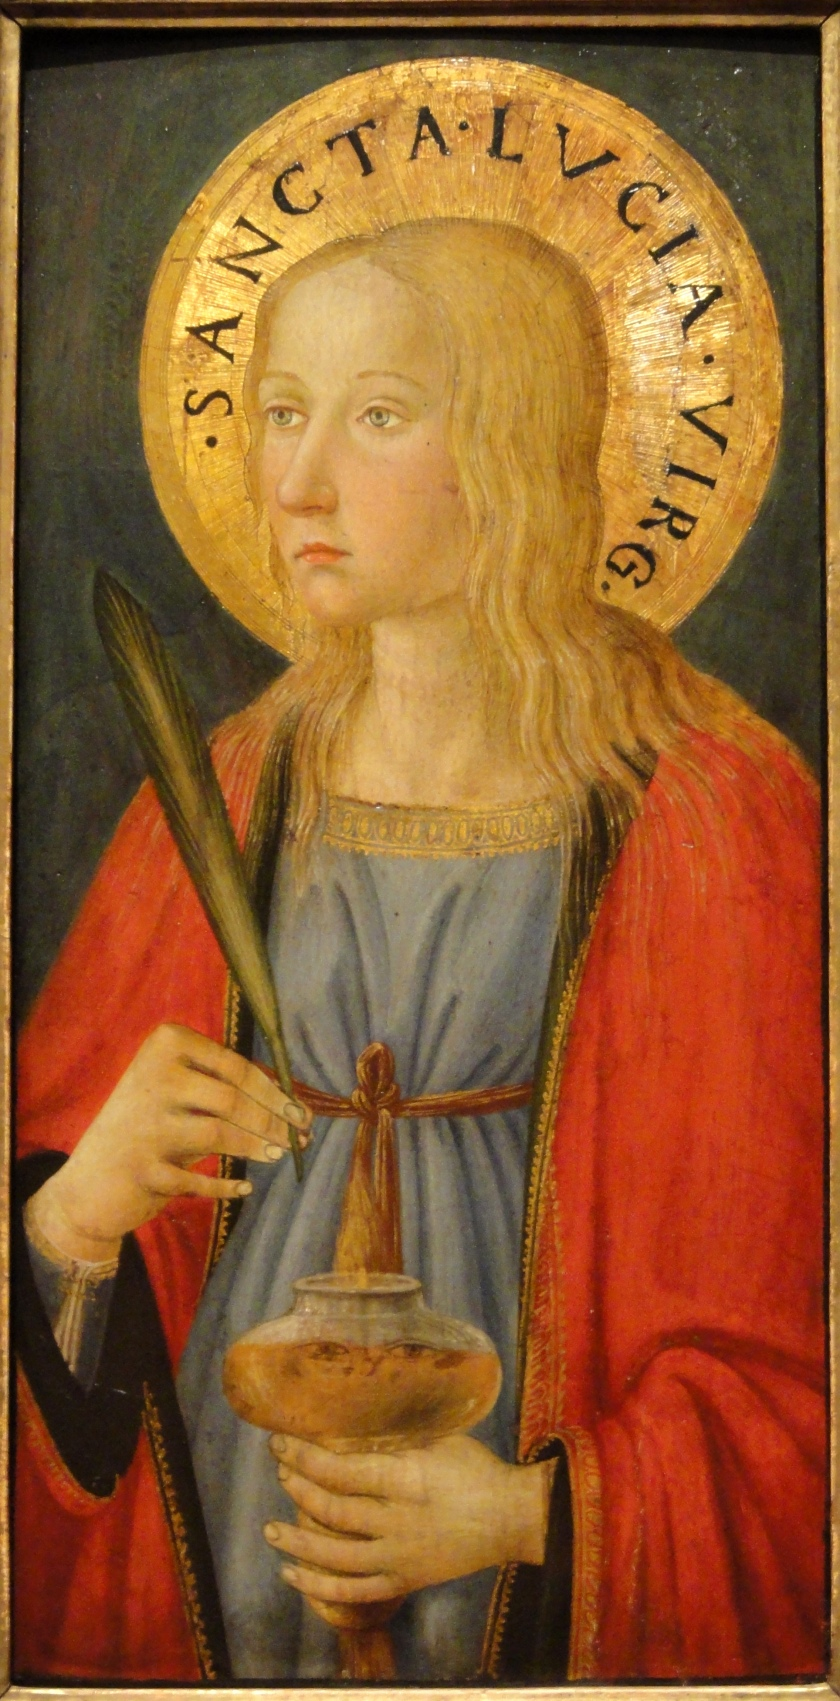 Saint_Lucy_by_Cosimo_Rosselli,_Florence,_c._1470,_tempera_on_panel_-_San_Diego_Museum_of_Art_-_DSC06640